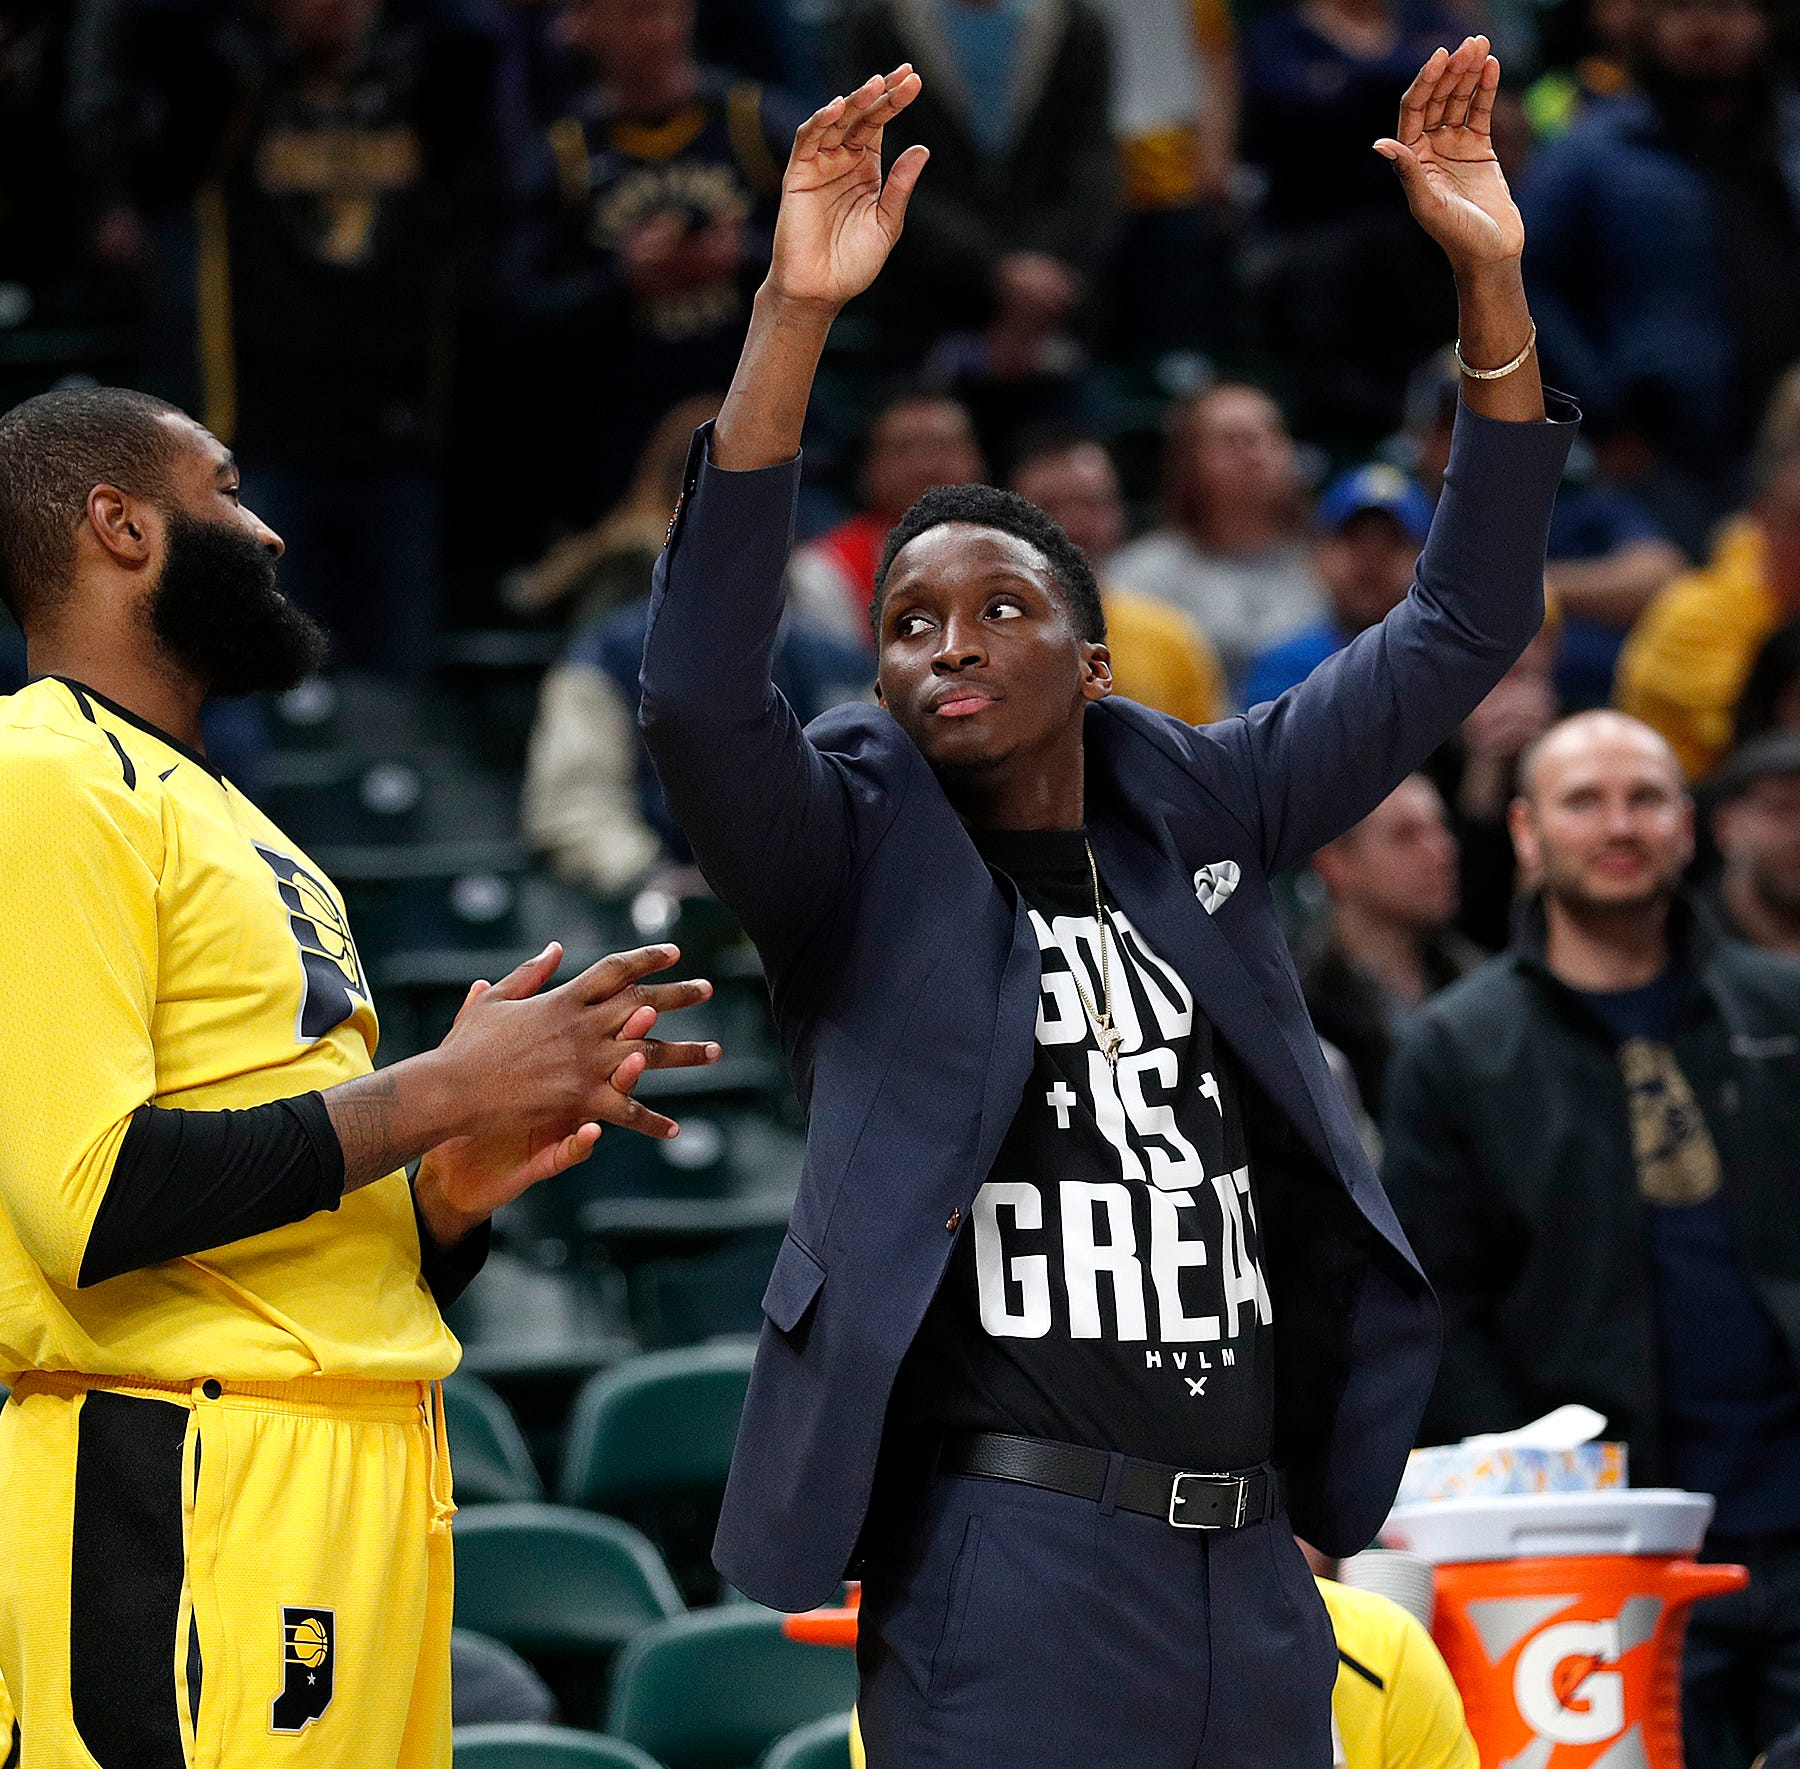 Pacers coach Nate McMillan: Victor Oladipo will start against Bucks